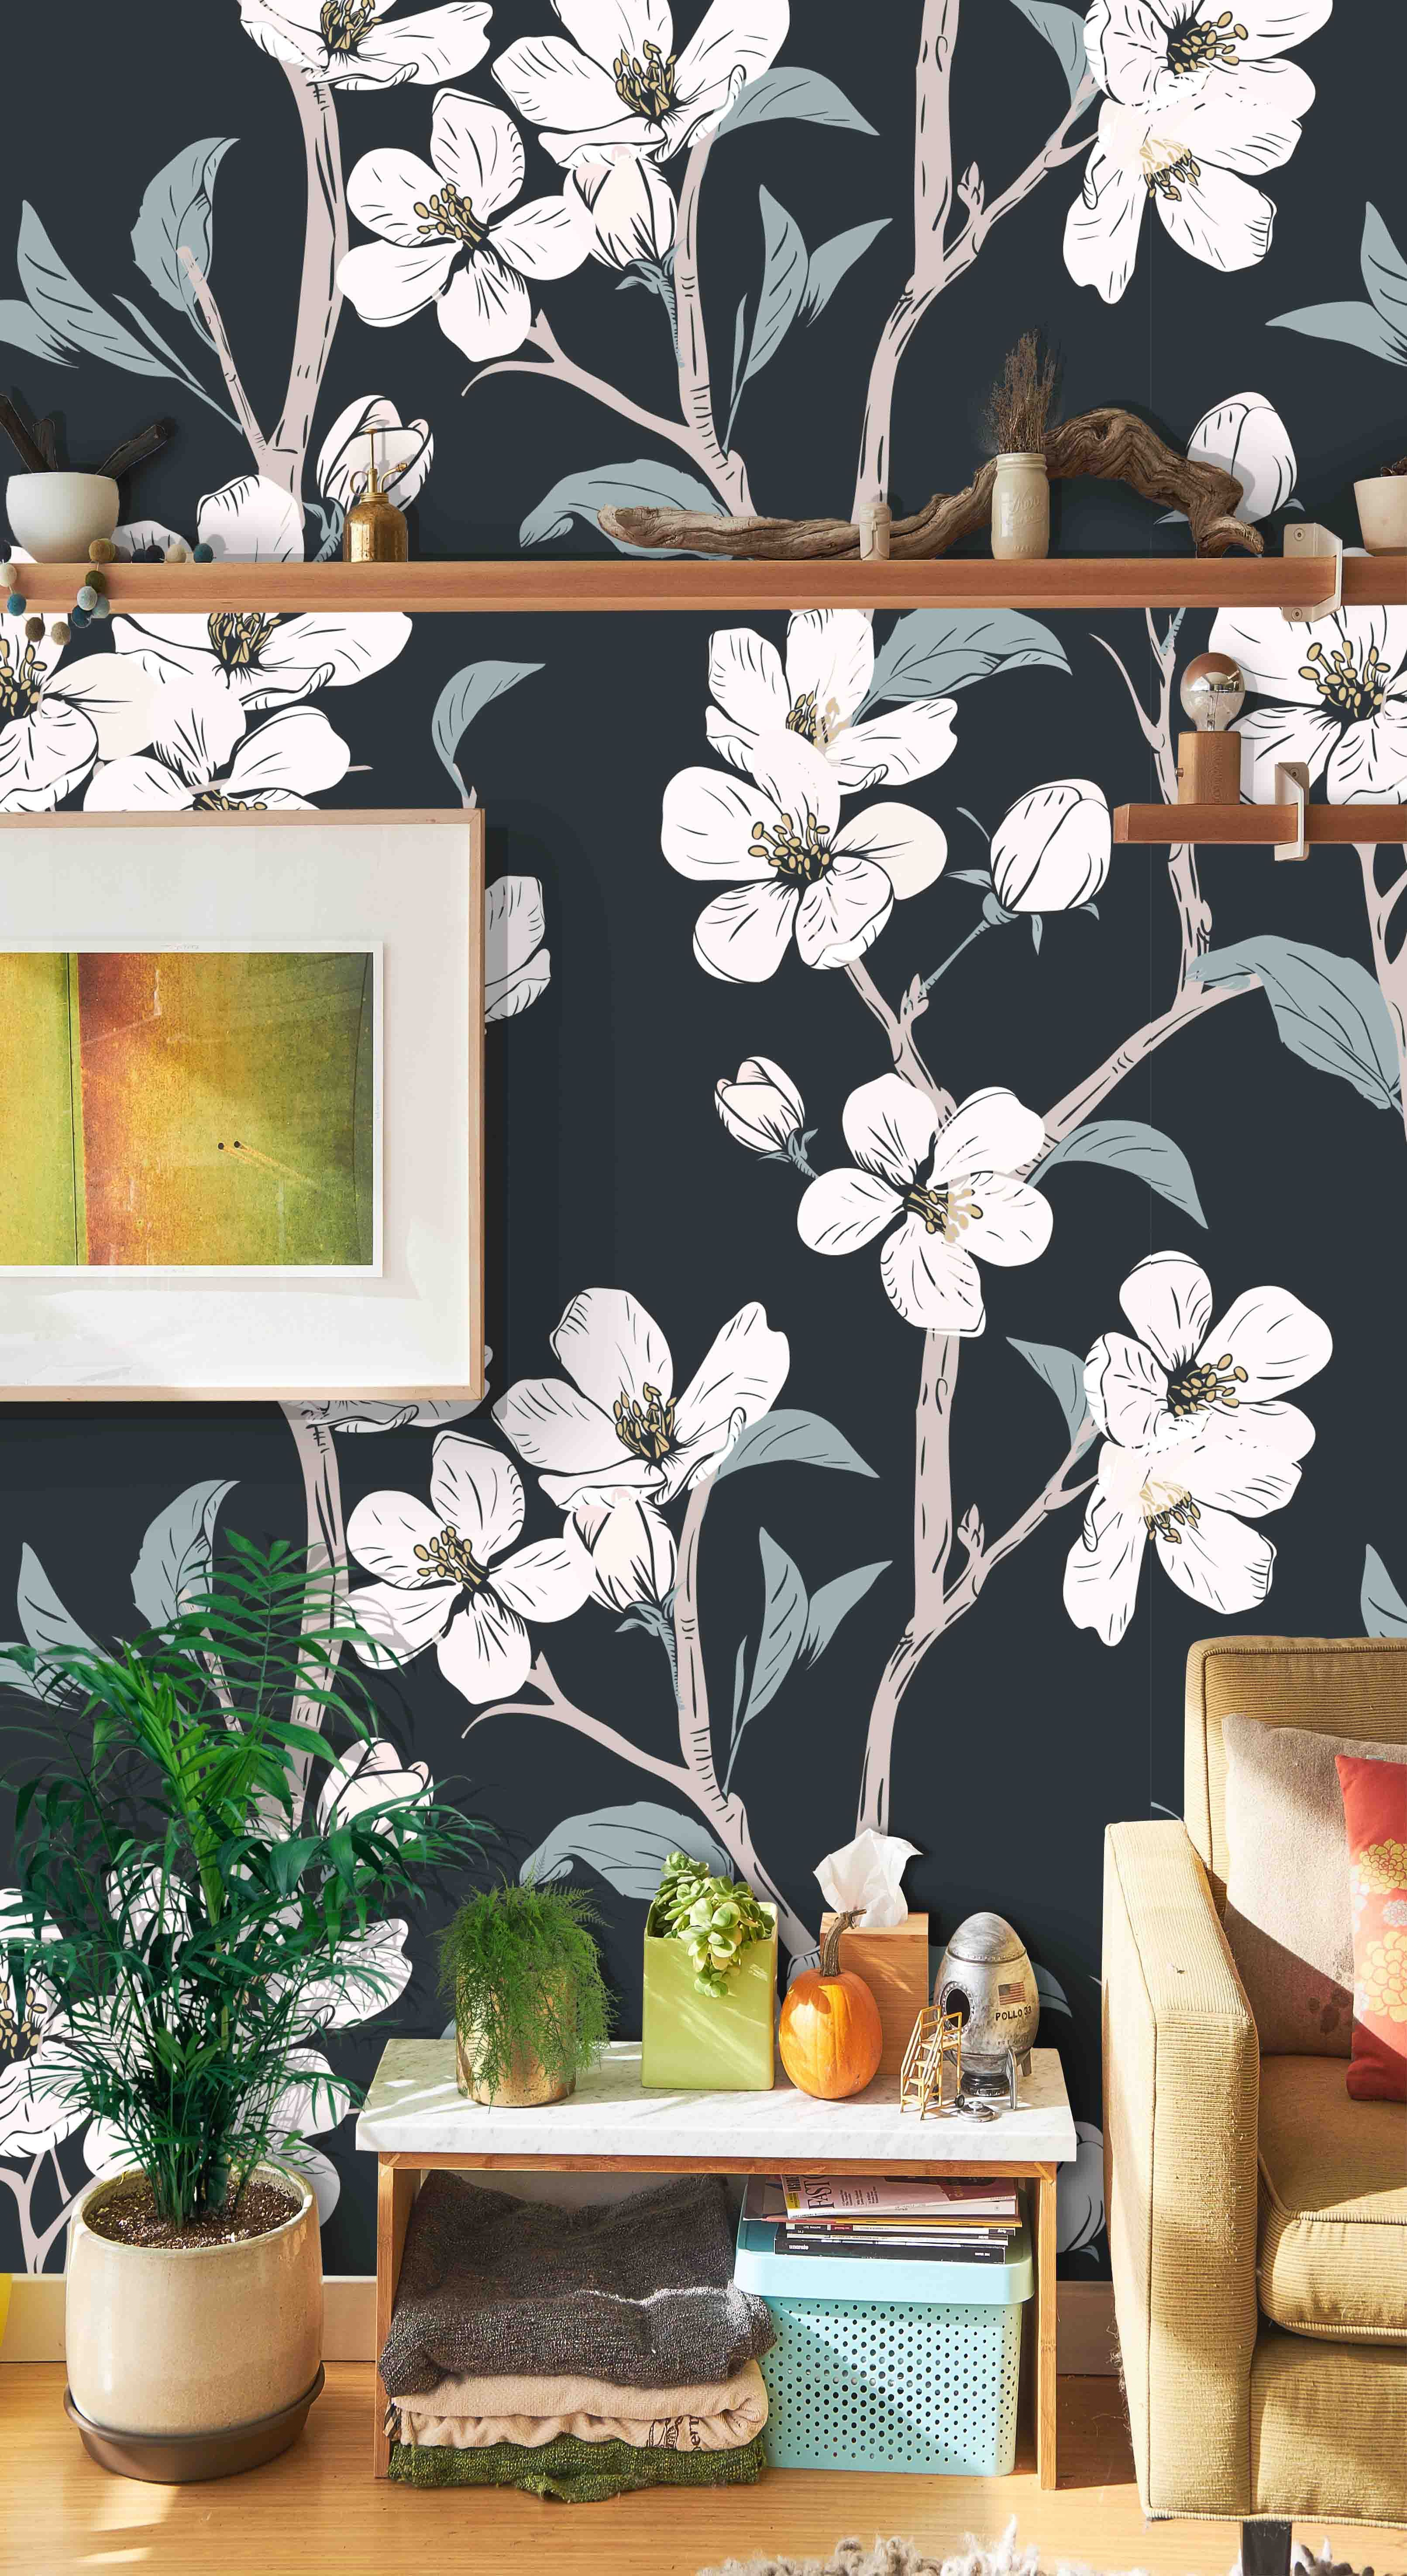 Removable Self Adhesive Mural Wallpaper White Flowers On Etsy Vinyl Wallpaper Mural Wallpaper Wallpaper